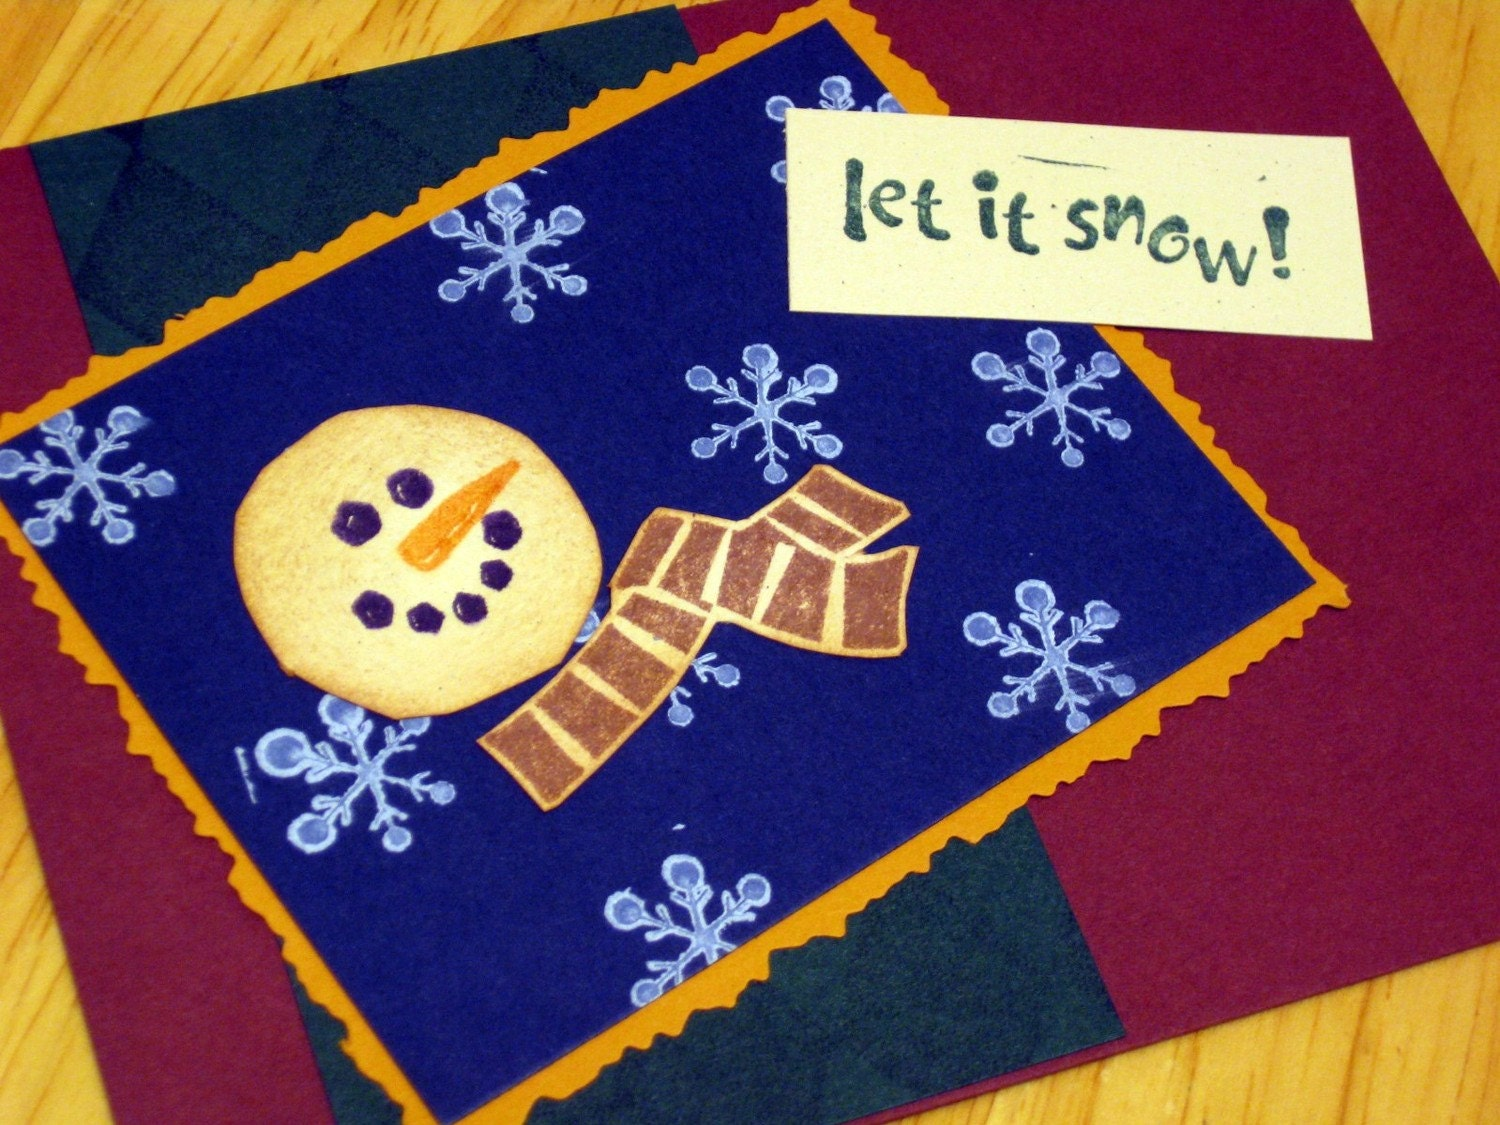 Let it Snow Blank Holiday Card with Snowman